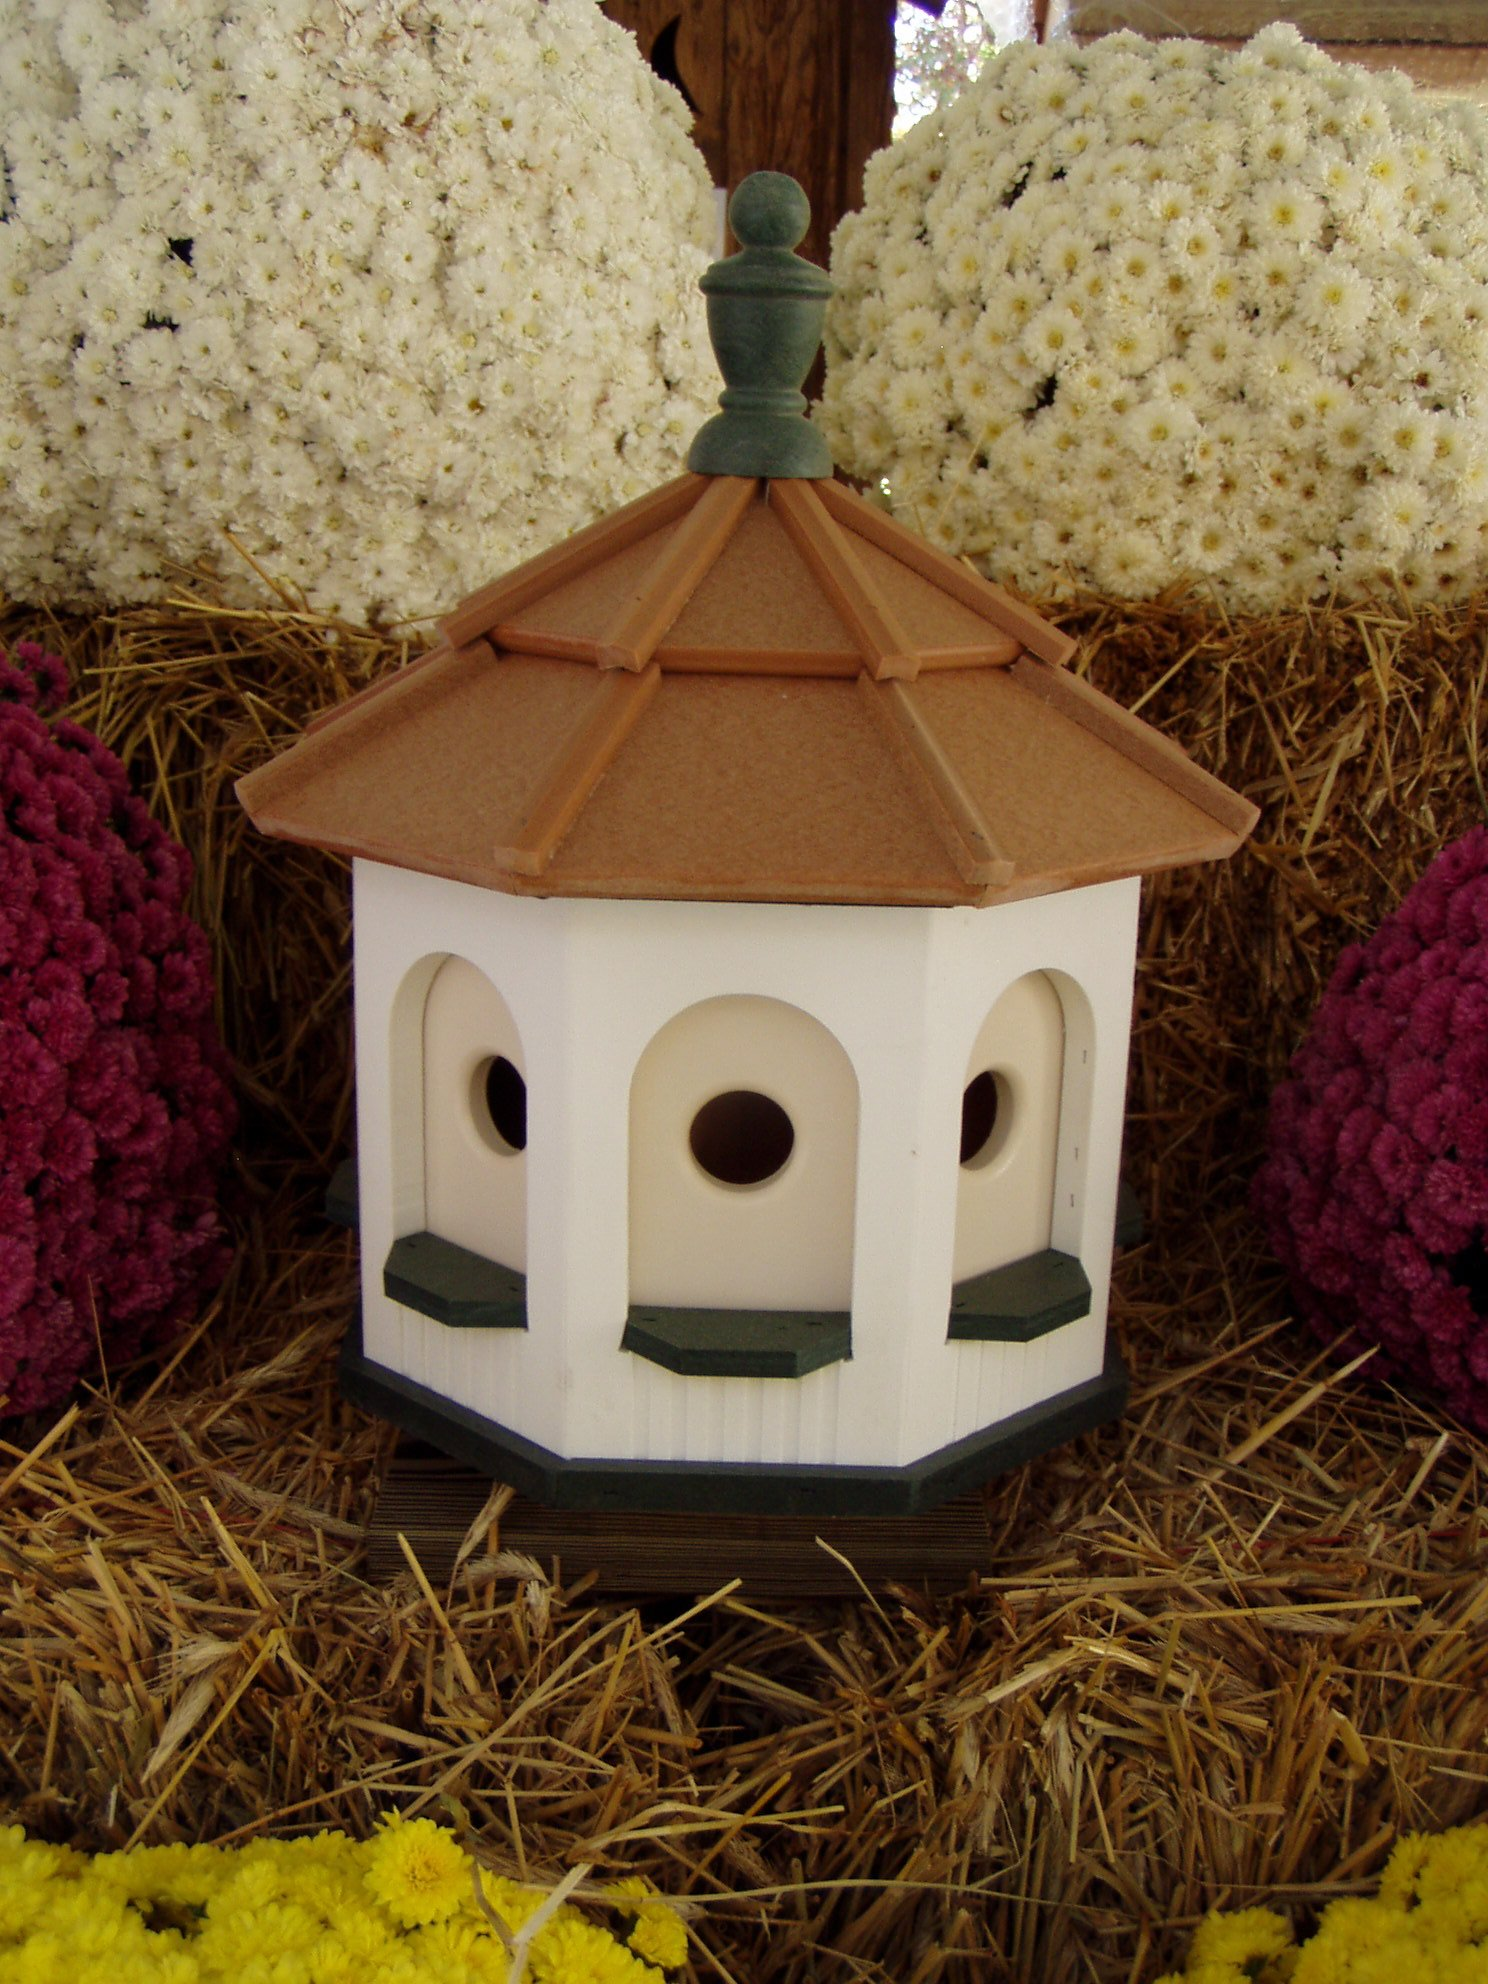 Medium Vinyl Birdhouse Amish Homemade Handmade Handcrafted White & Green